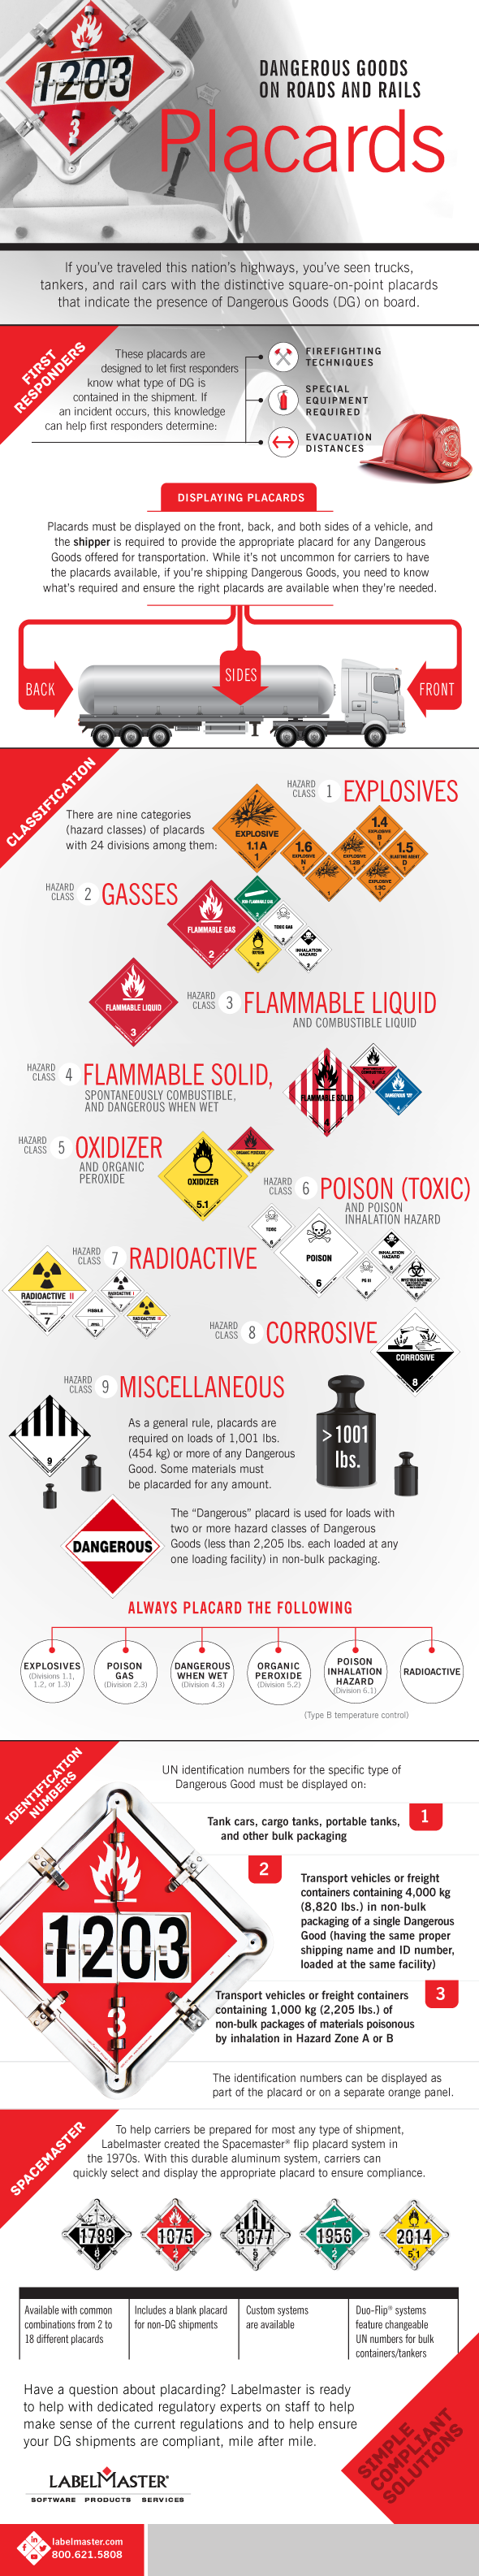 Infographic | Dangerous Goods on Roads and Rails: Placards